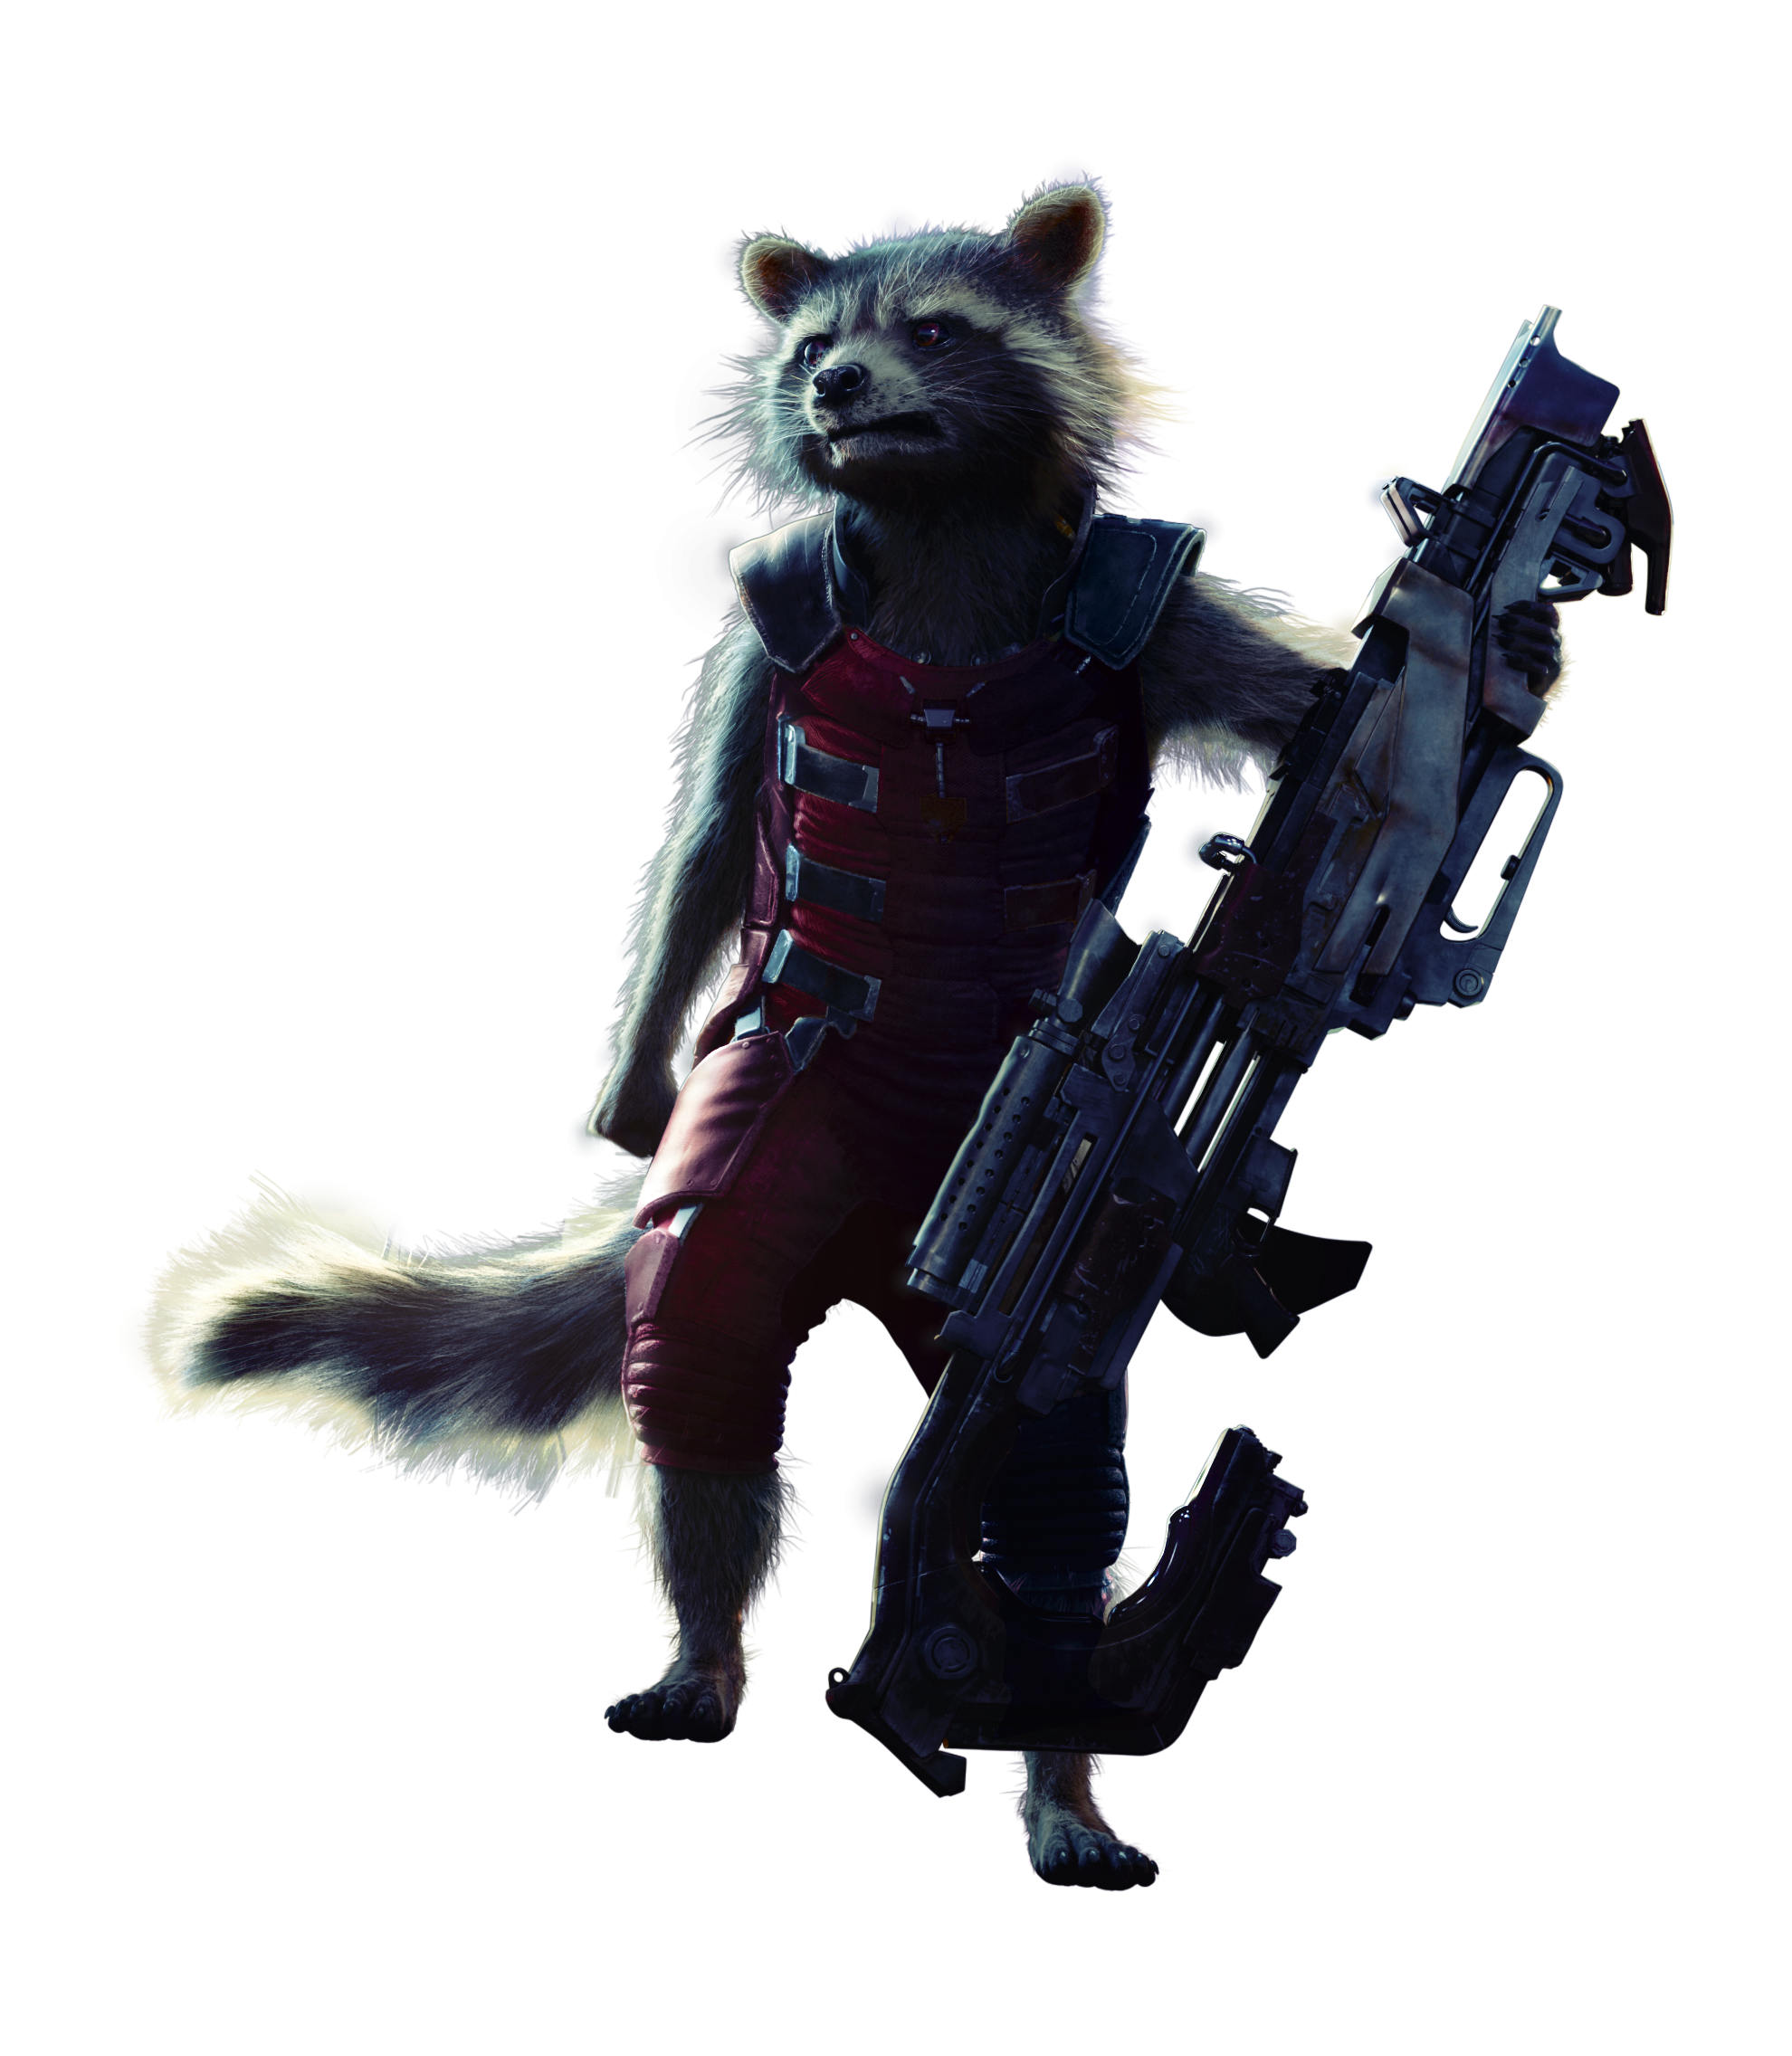 Guardians Rocket